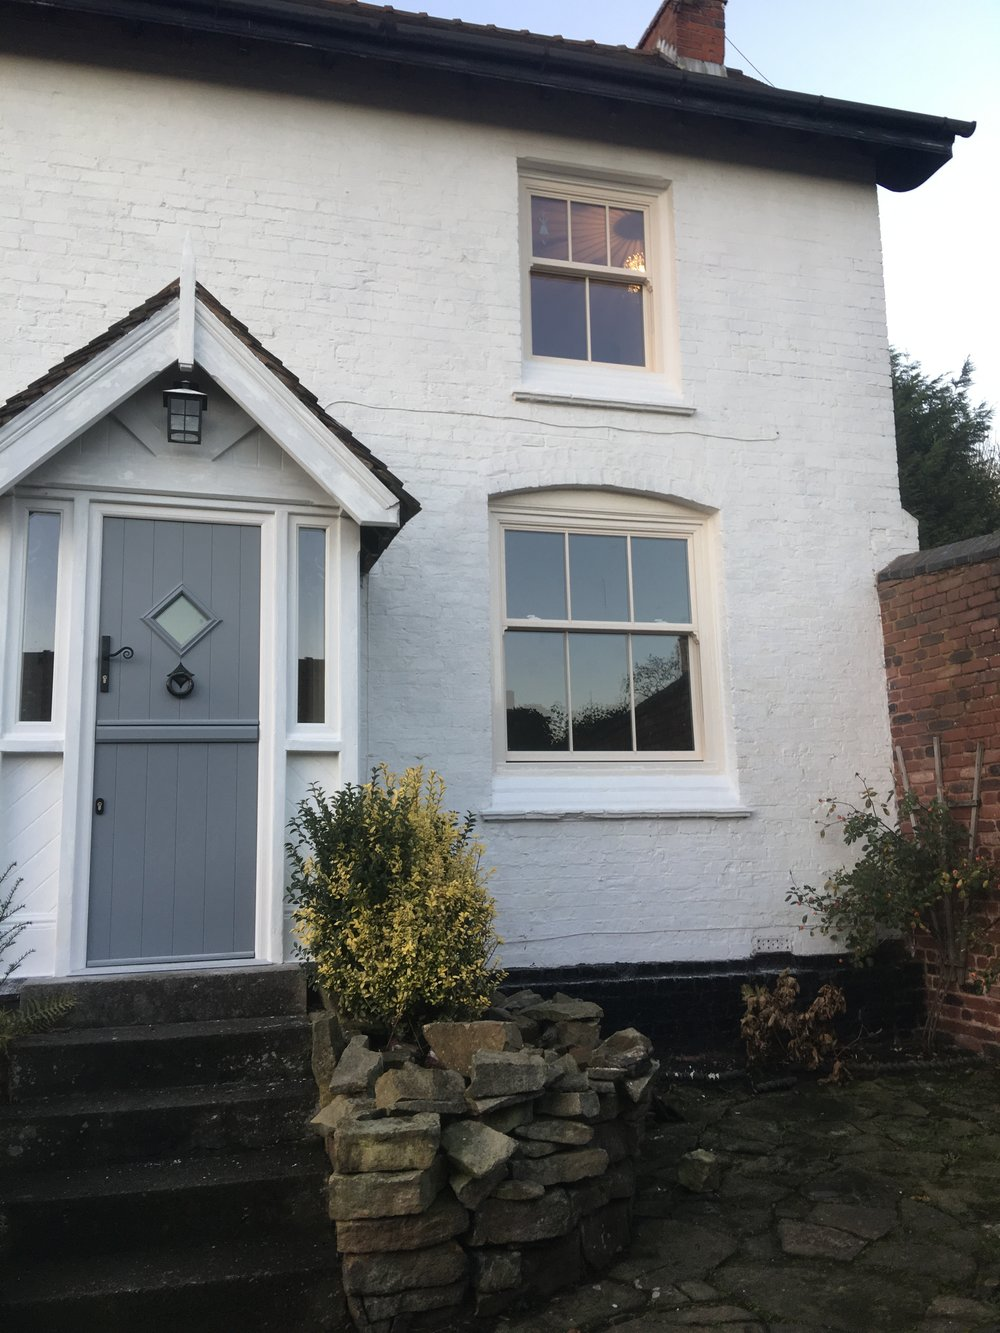 upvc victorian replica sash windows we recently fitted to a property in dudley, west midlands.